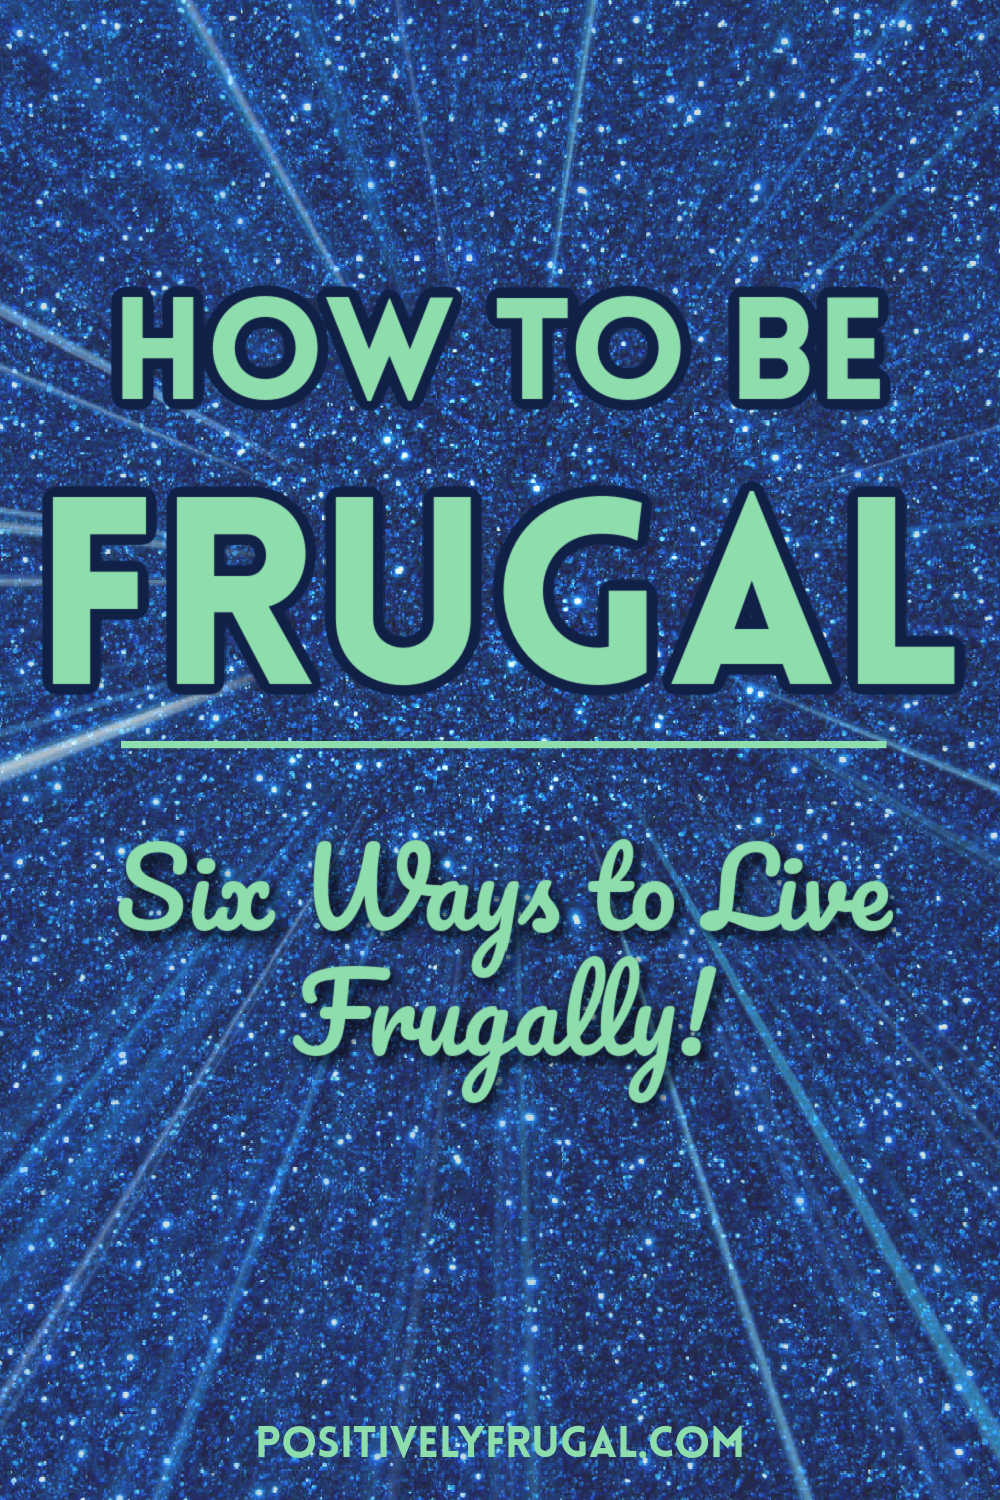 How To Be Frugal in 6 Steps by PositivelyFrugal.com